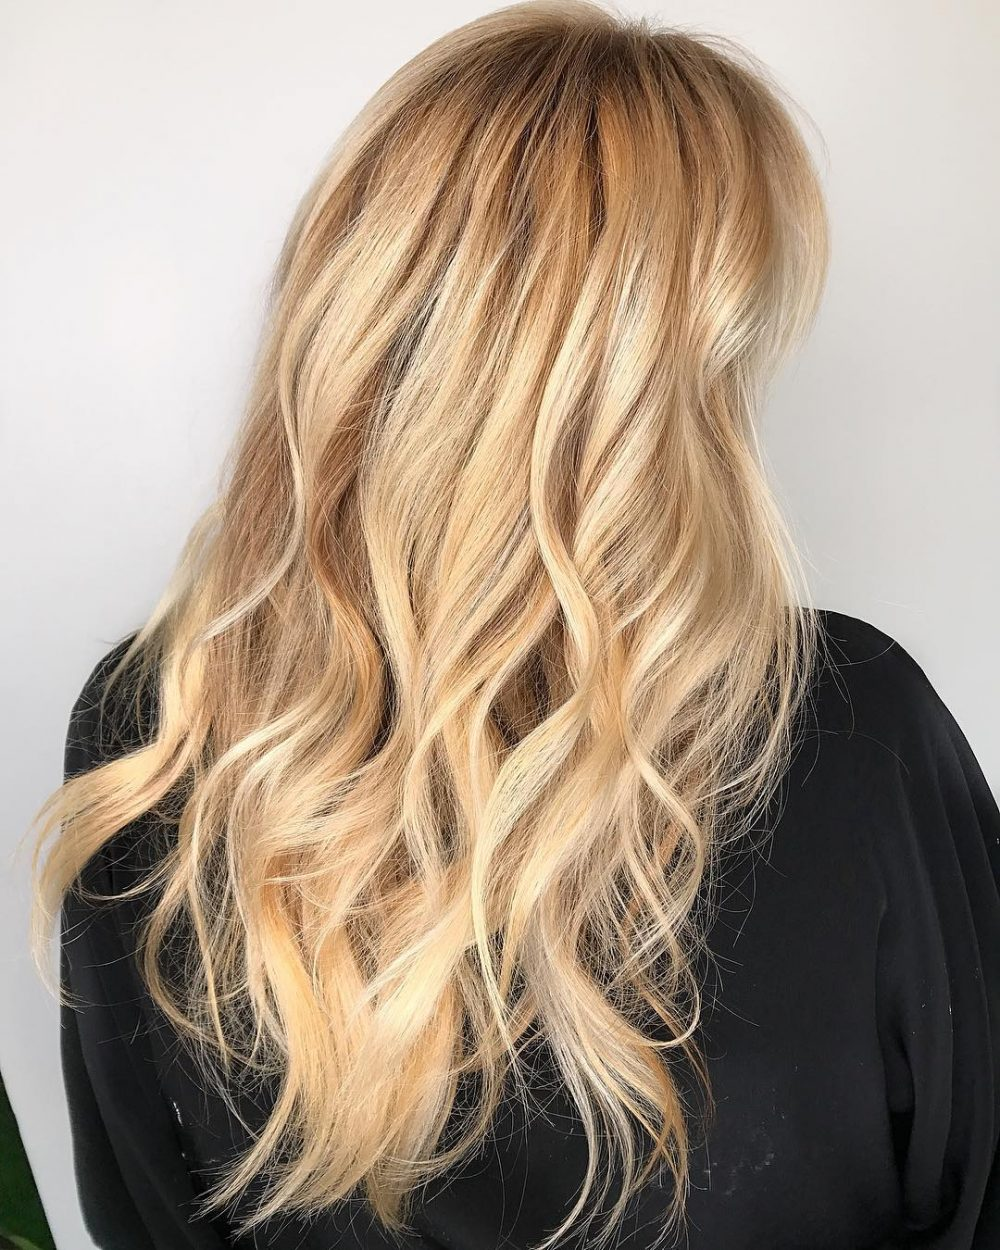 23 Top Long Blonde Hair Ideas Bombshell Alert